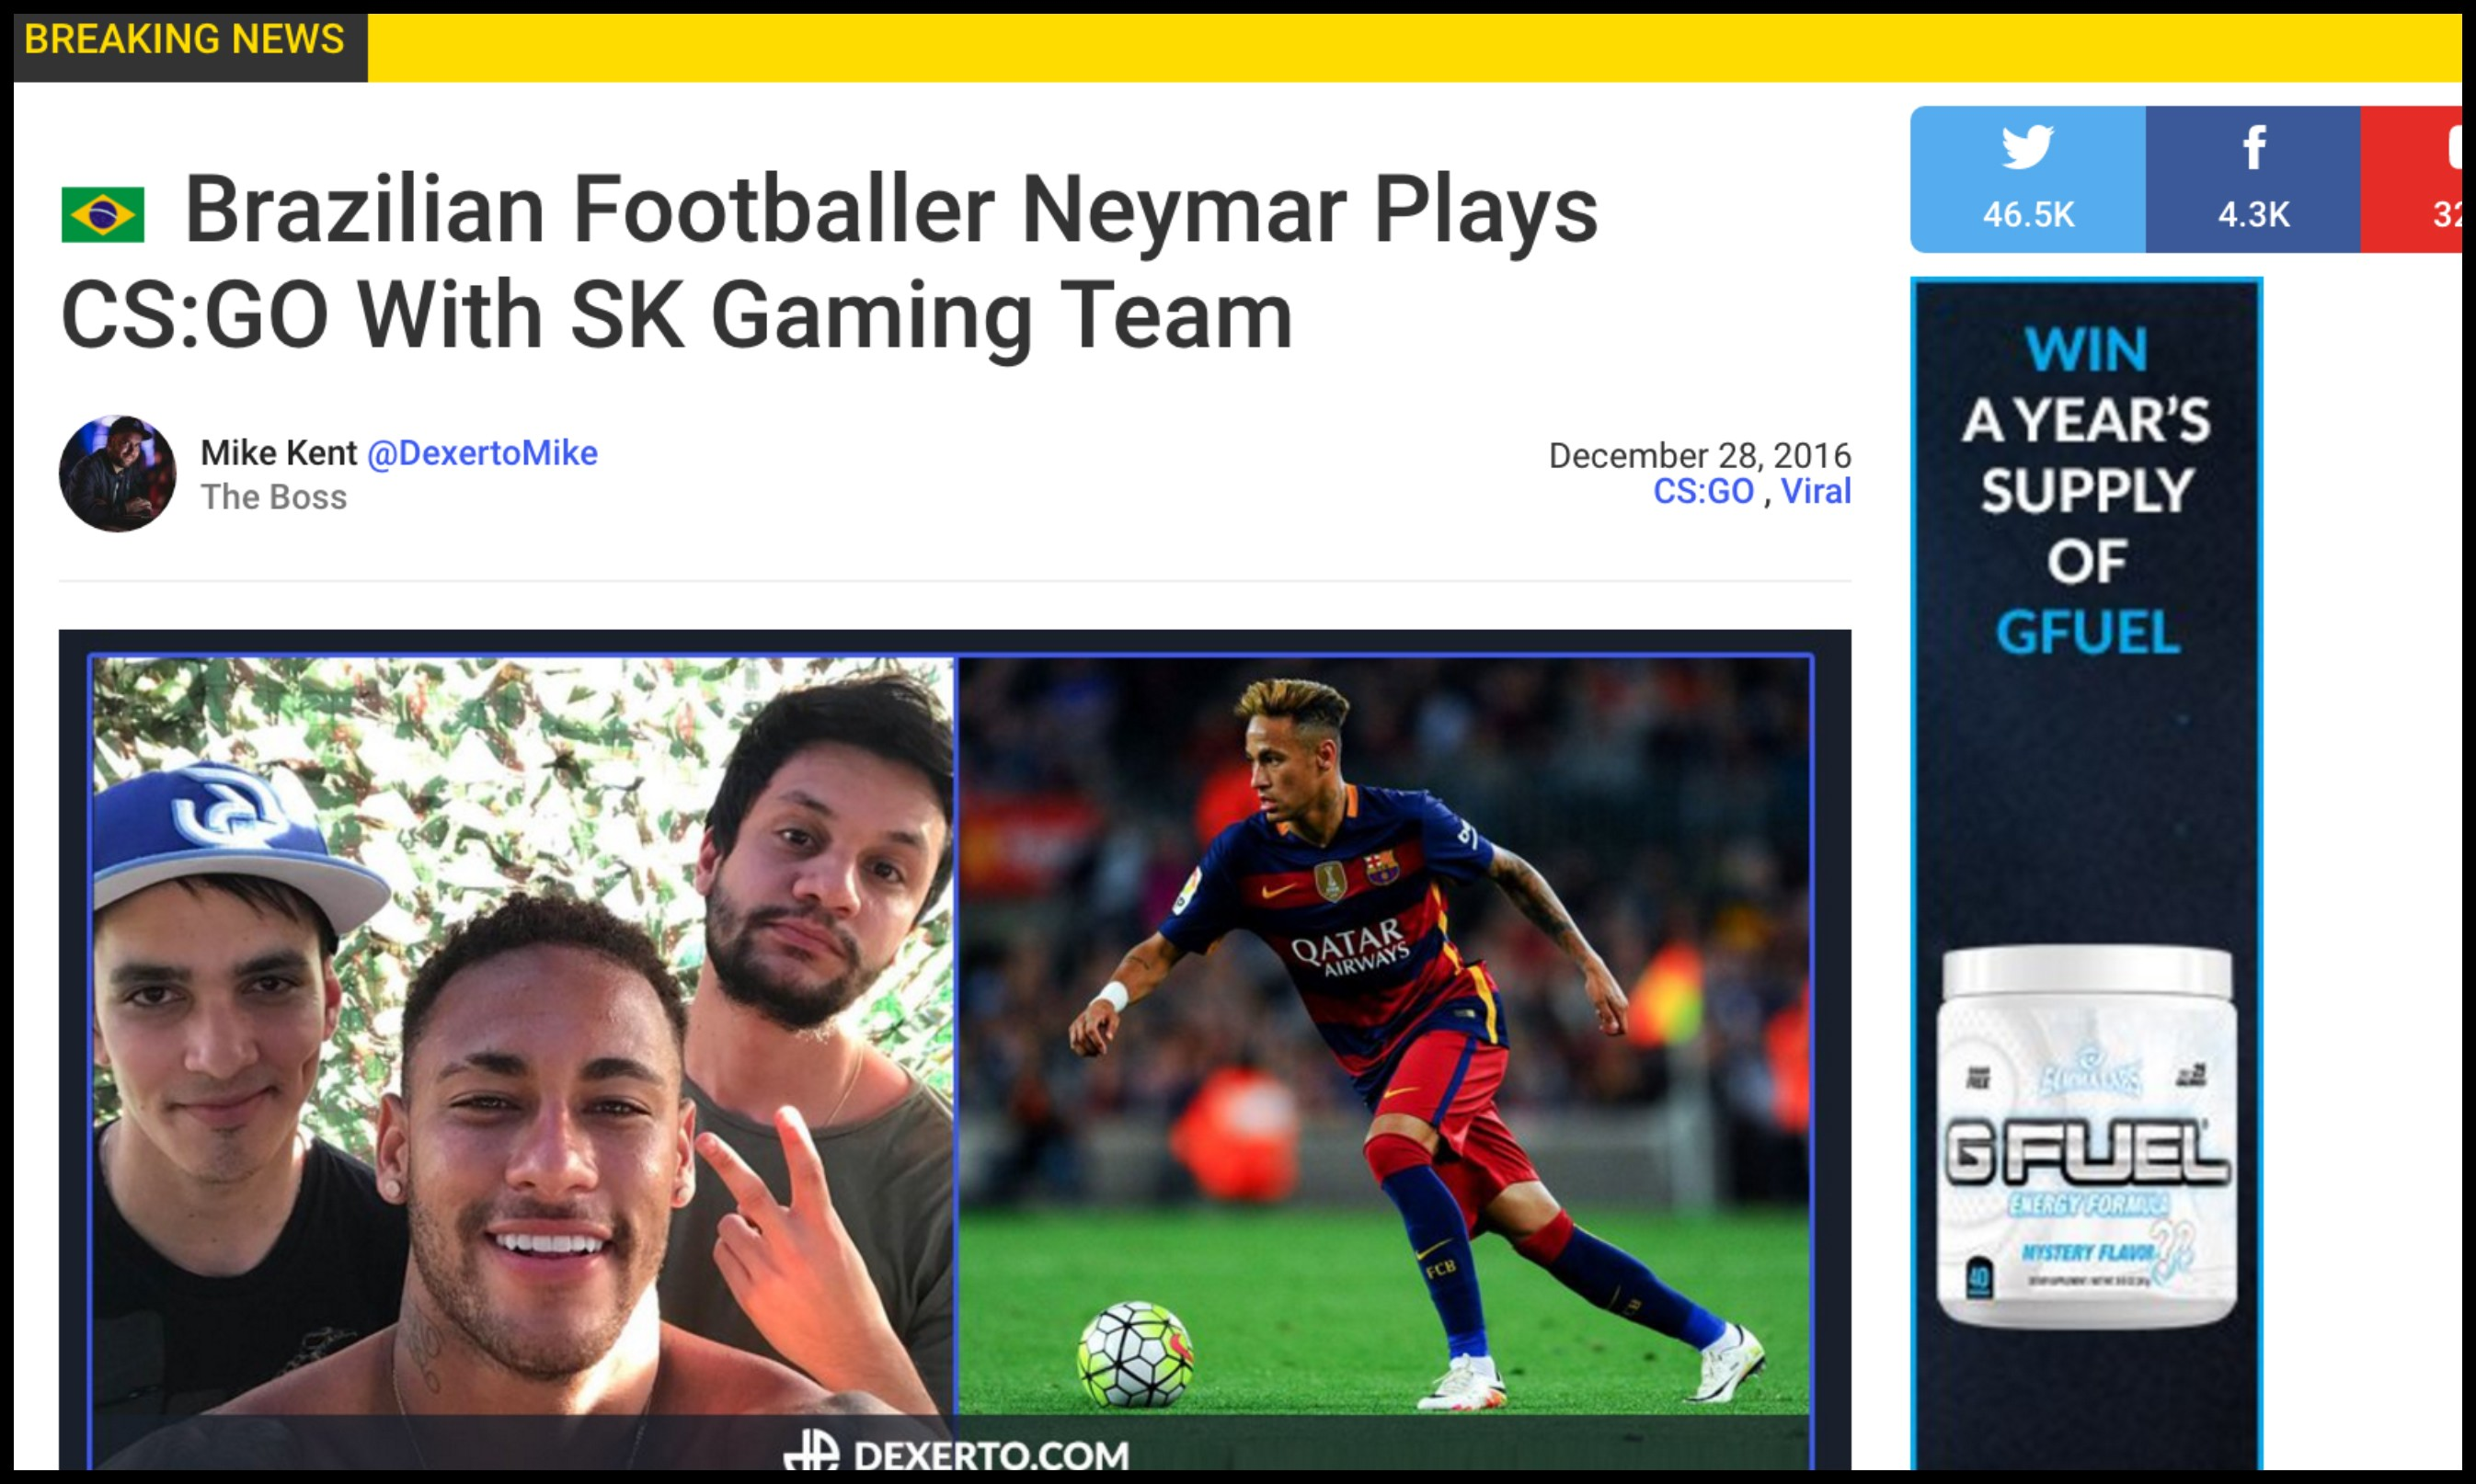 Brazilian Footballer Neymar Plays CS:GO With SK Gaming Team